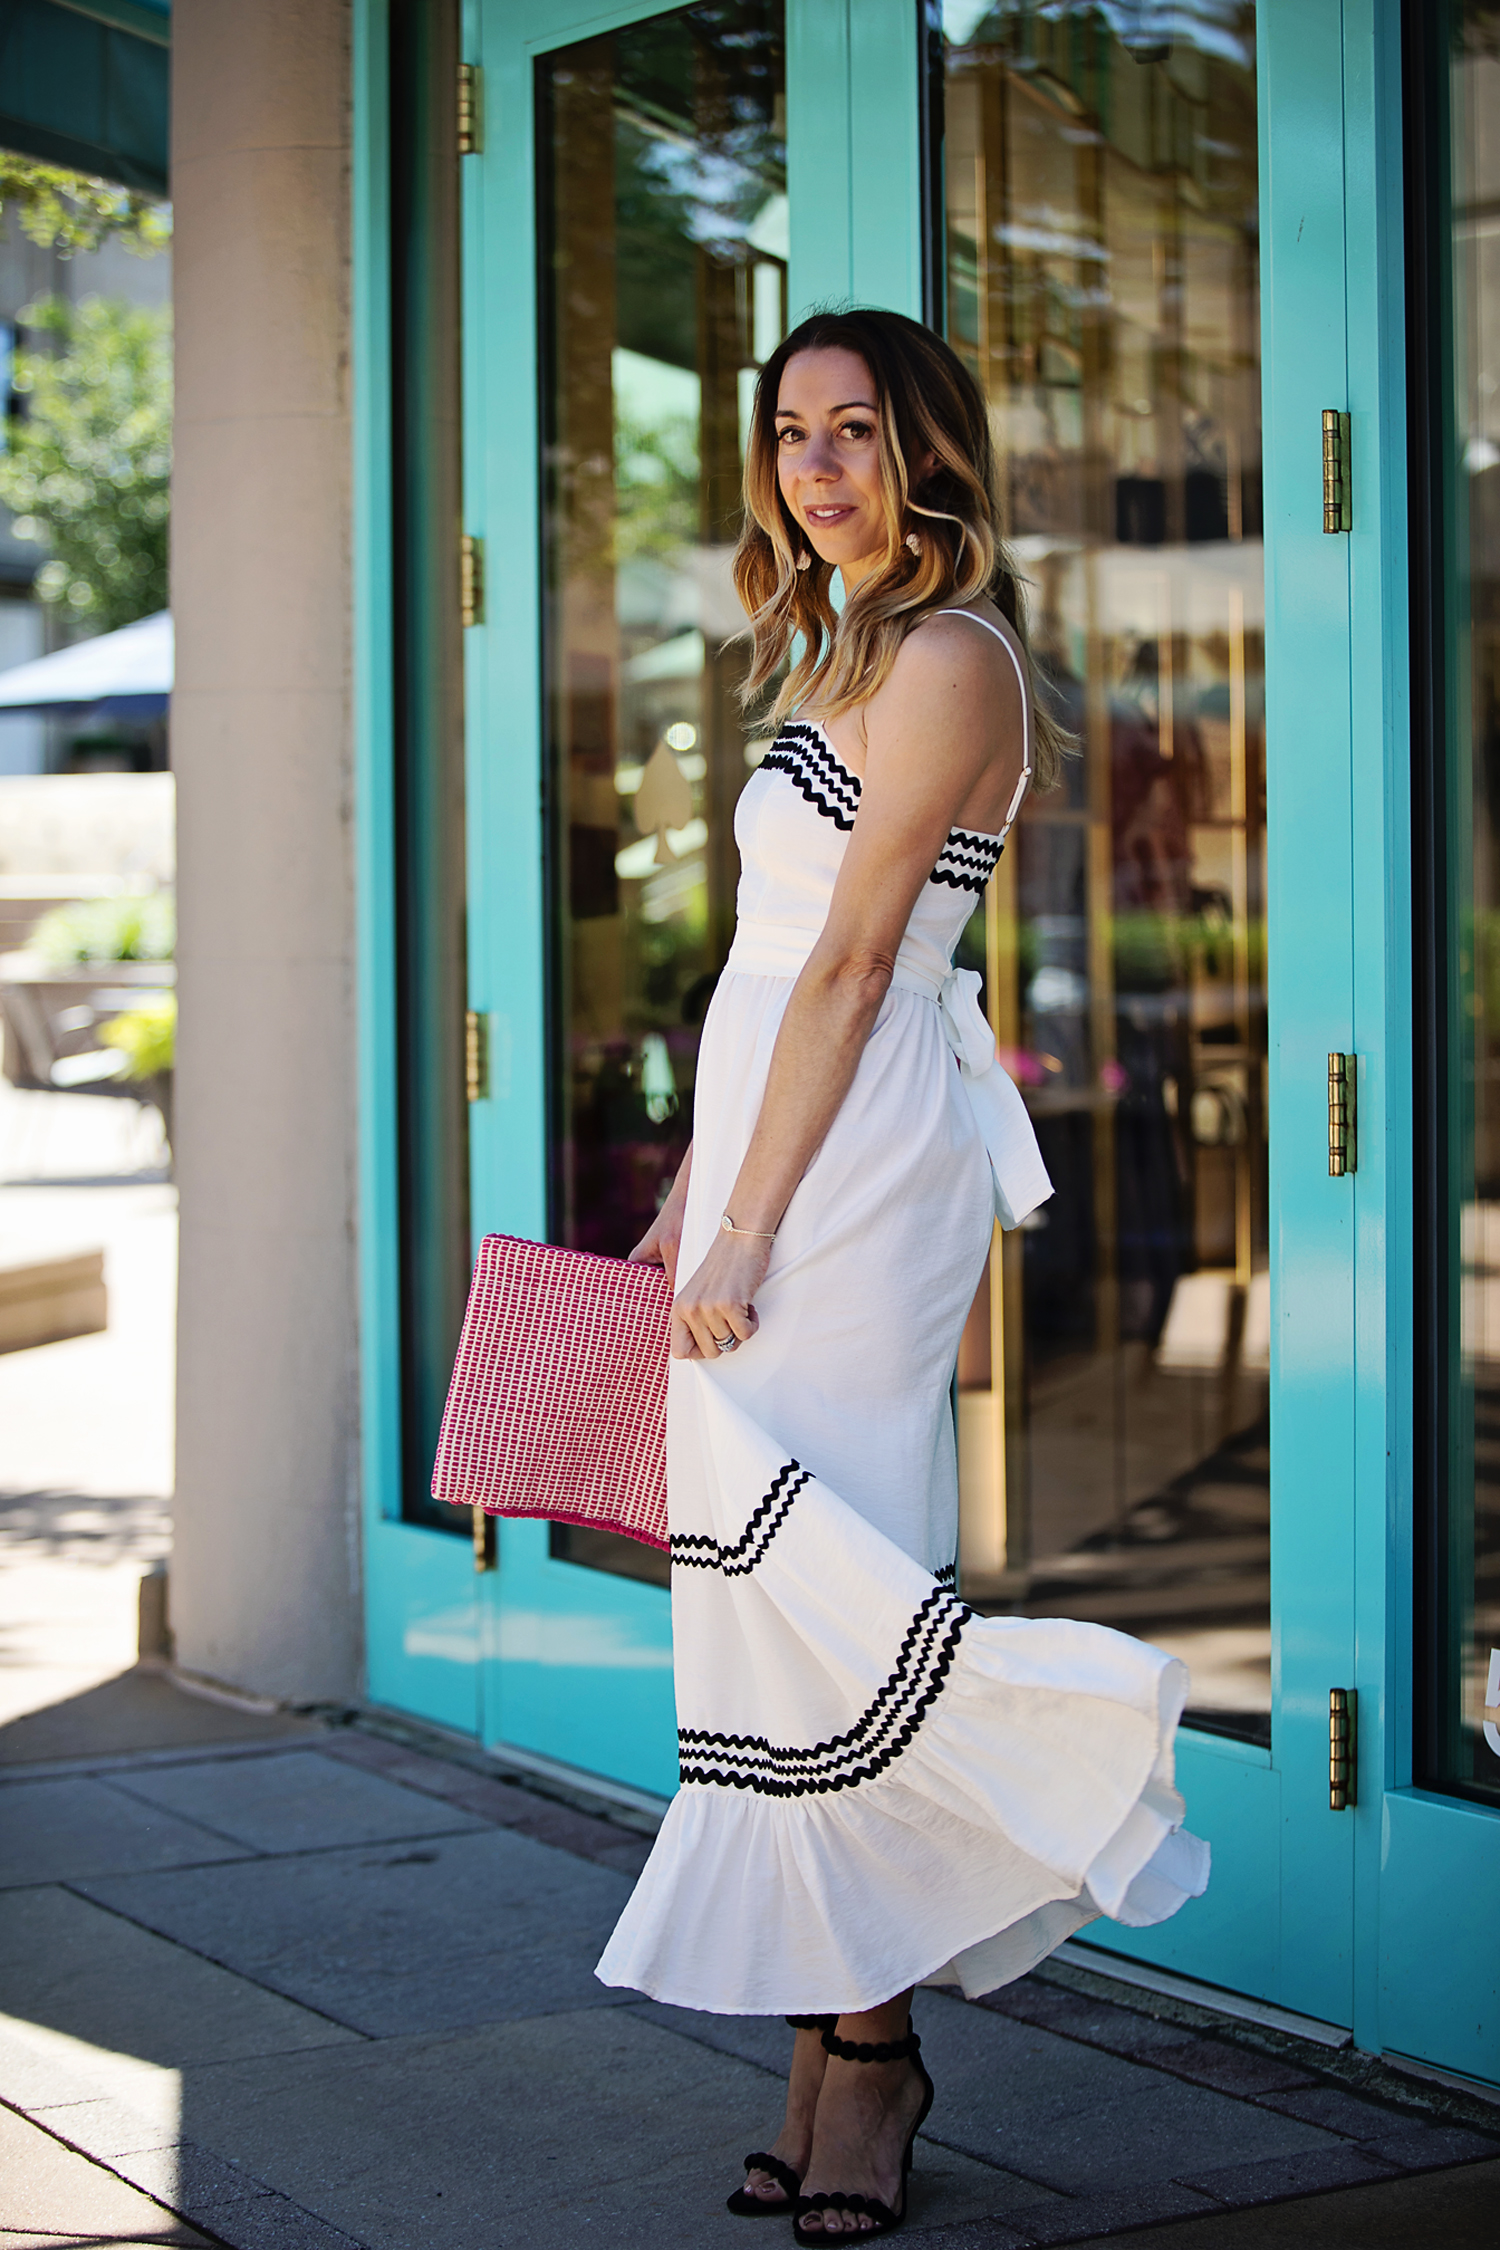 The Motherchic wearing striped cece maxi dress